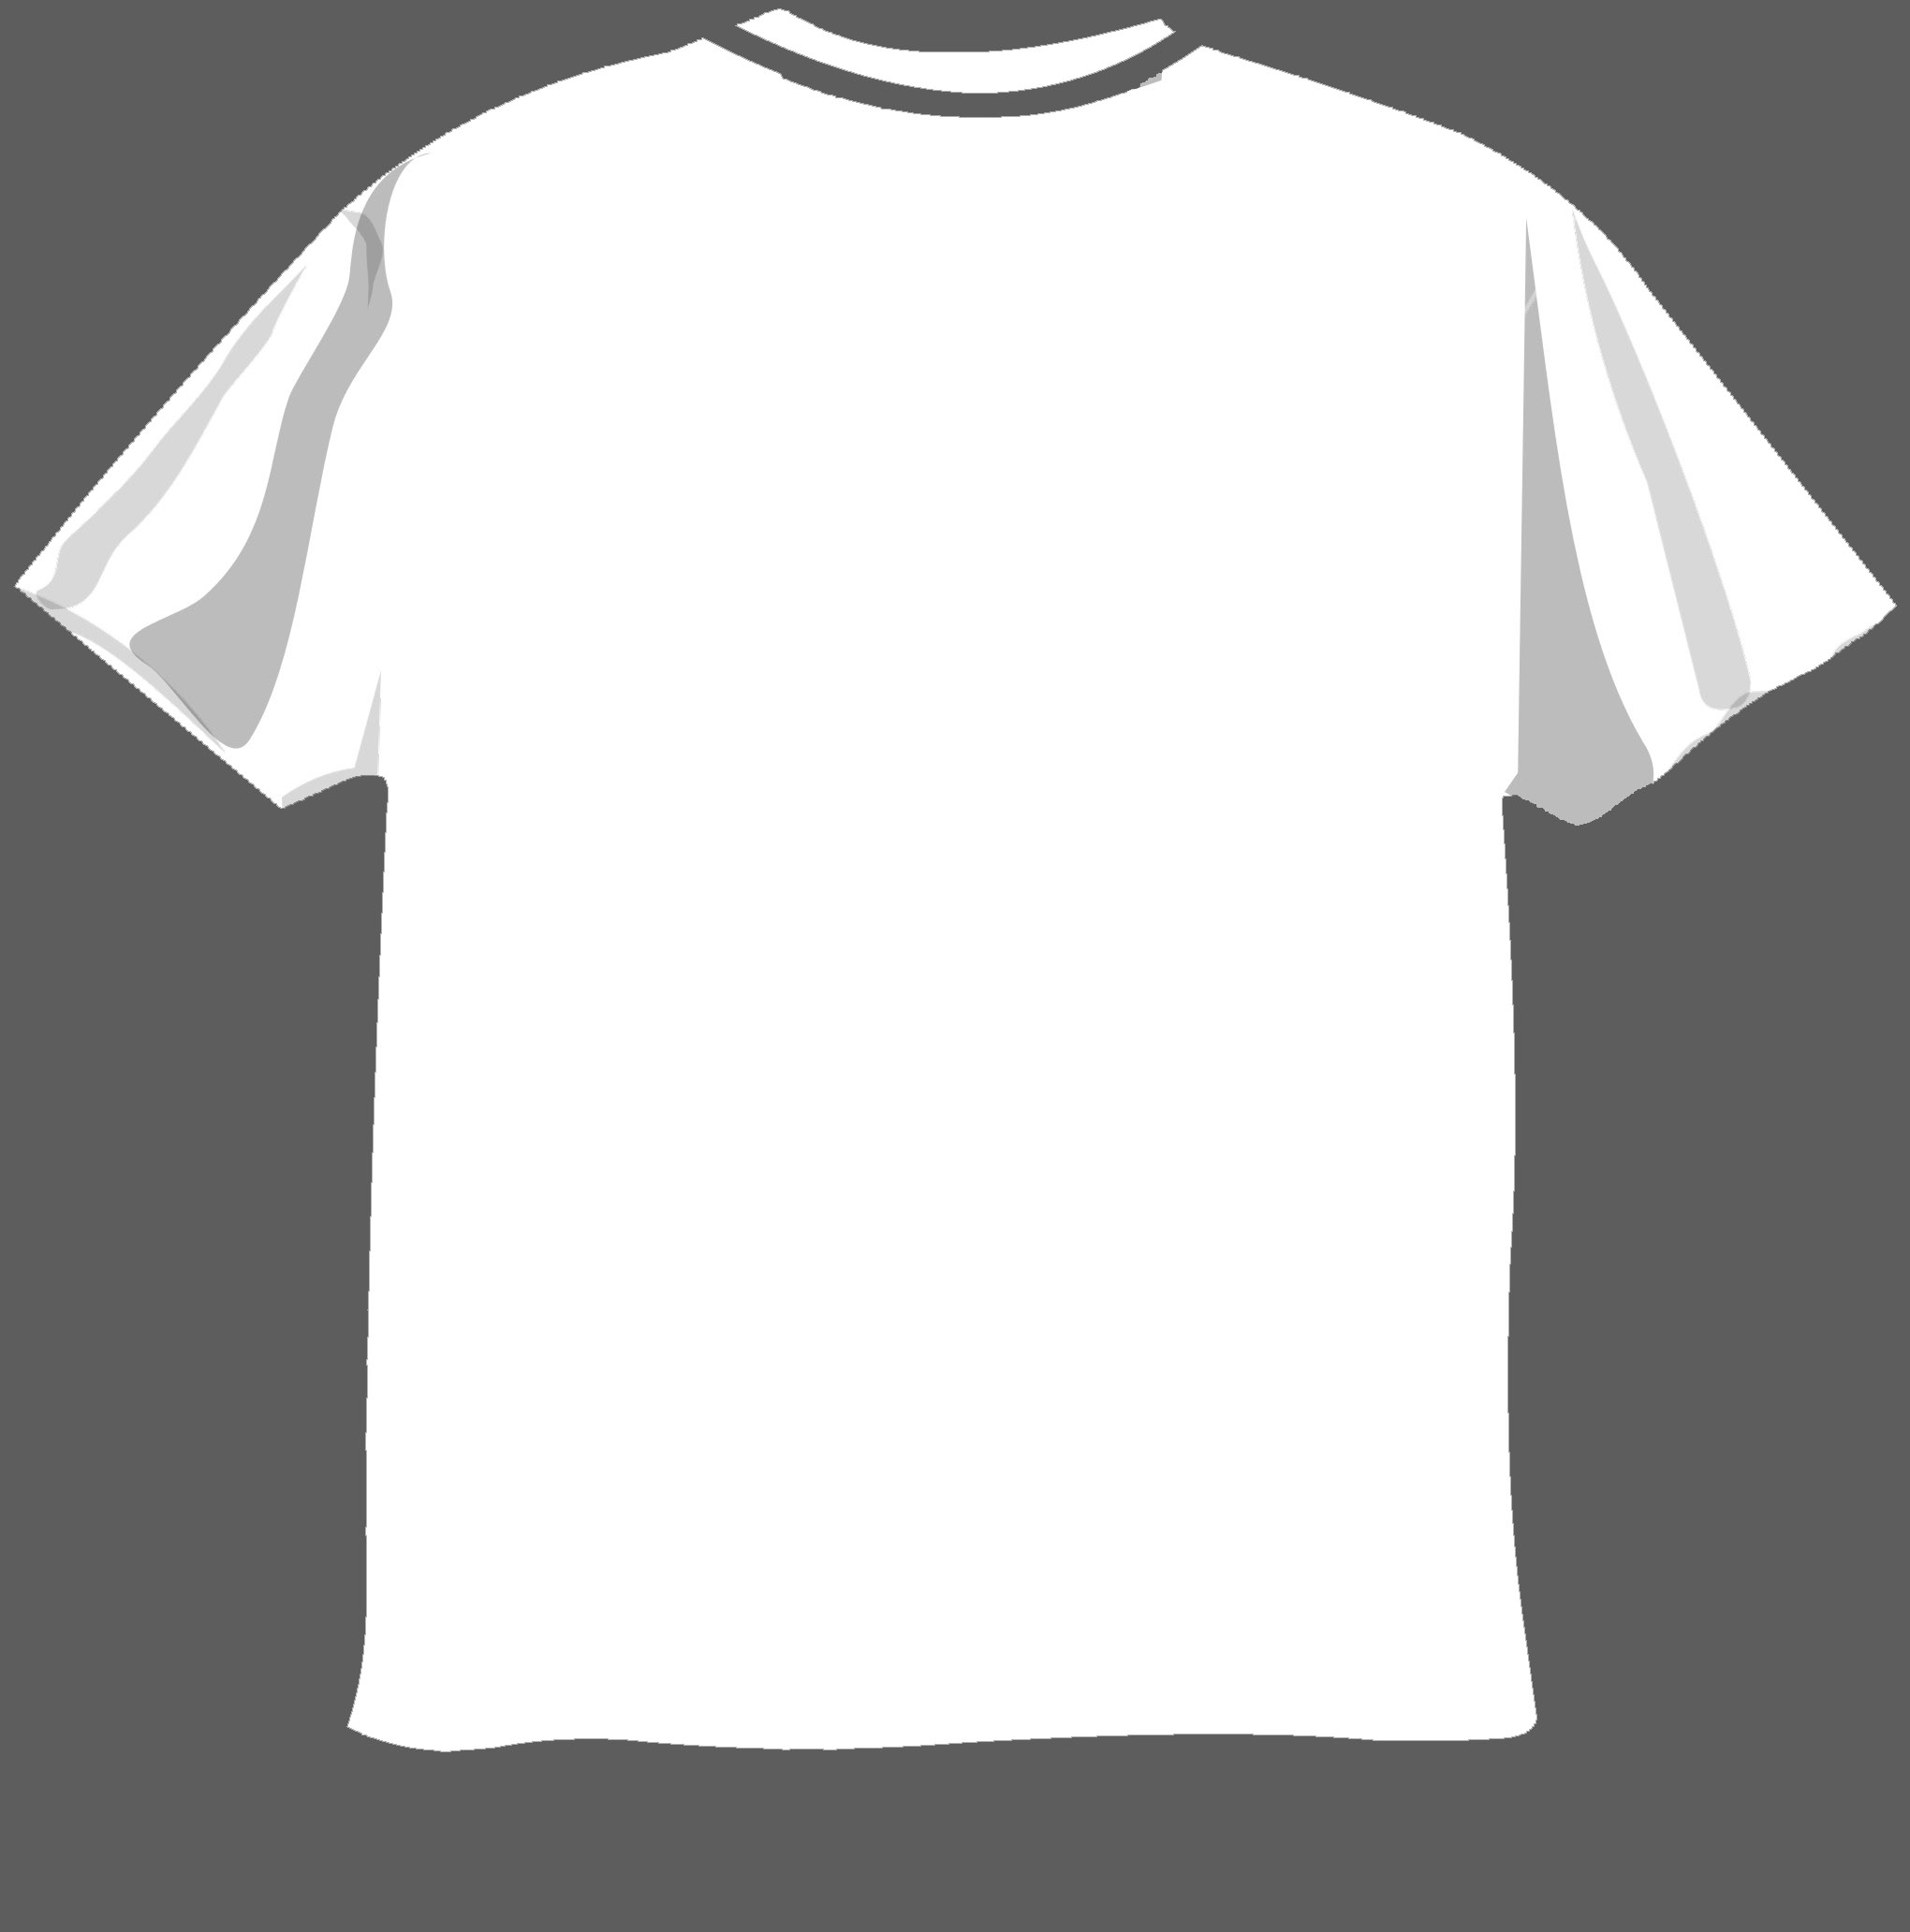 16 blank t shirt template photoshop images blank t shirt design template white t shirt. Black Bedroom Furniture Sets. Home Design Ideas